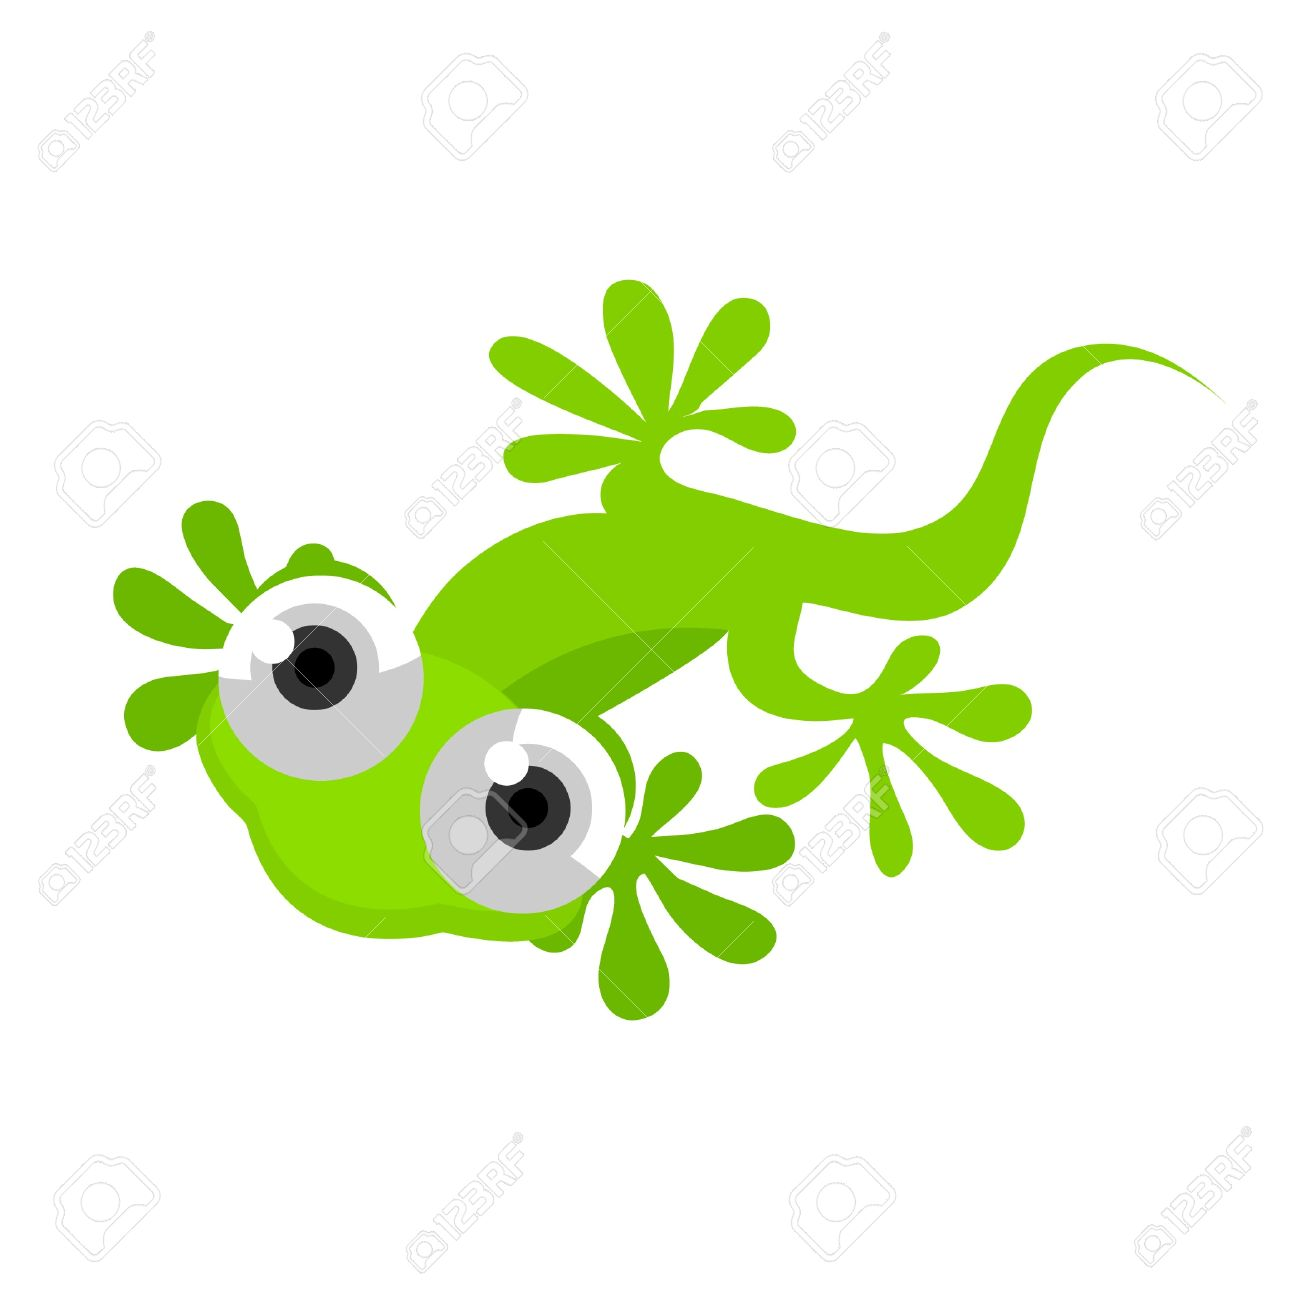 Green gecko clipart - Clipground